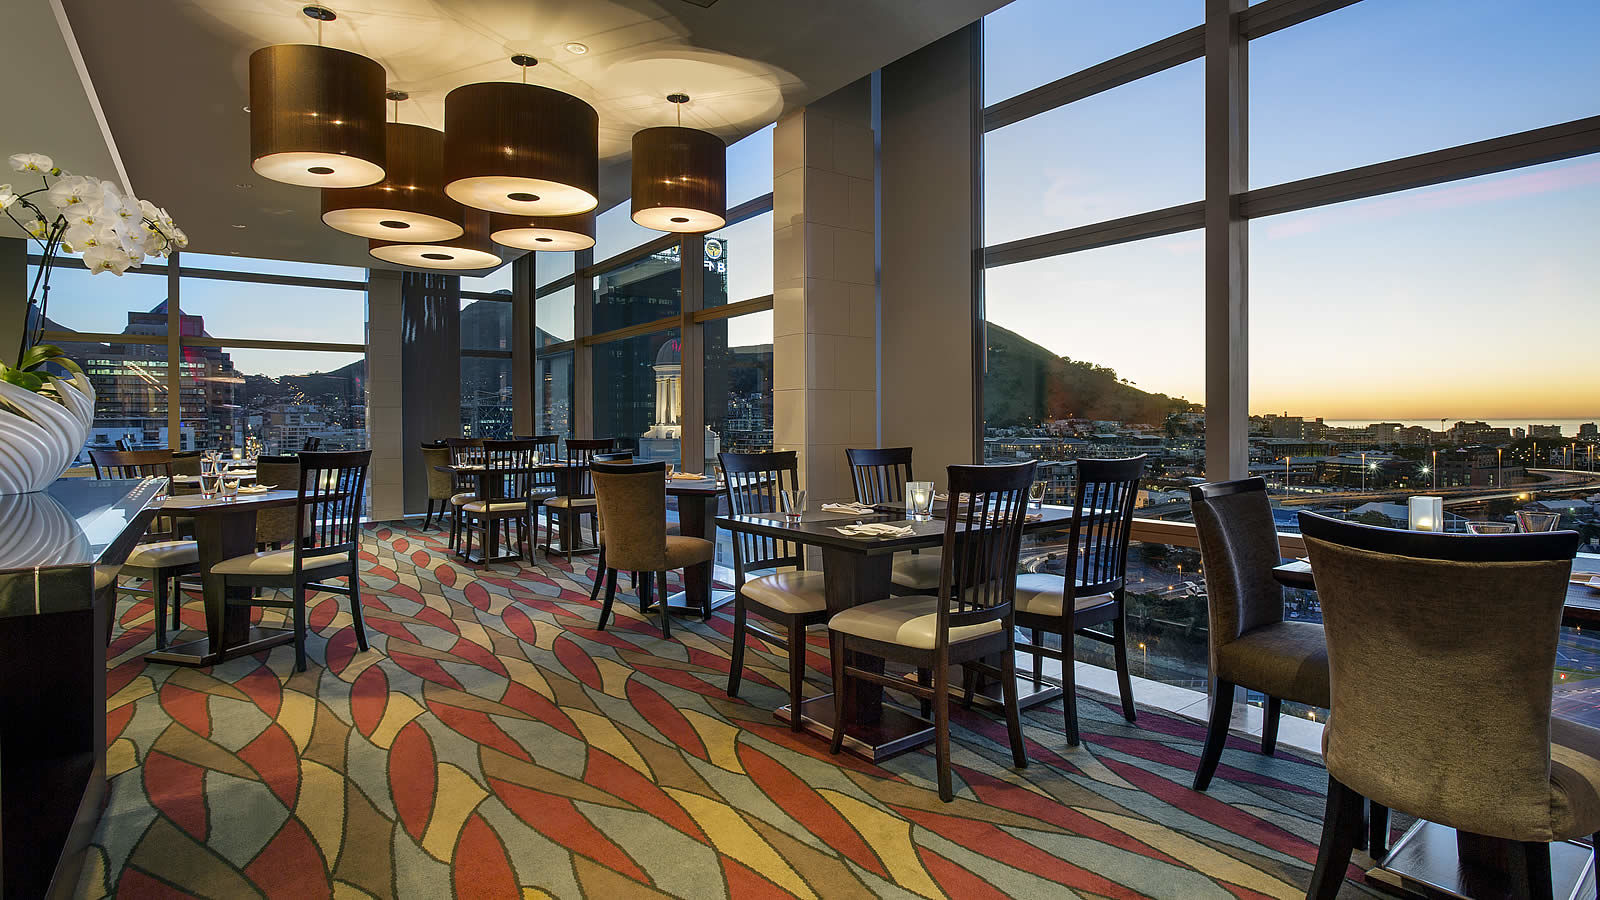 westin-cape-town-on19-restaurant-dining-area-view-1600-x-900-1